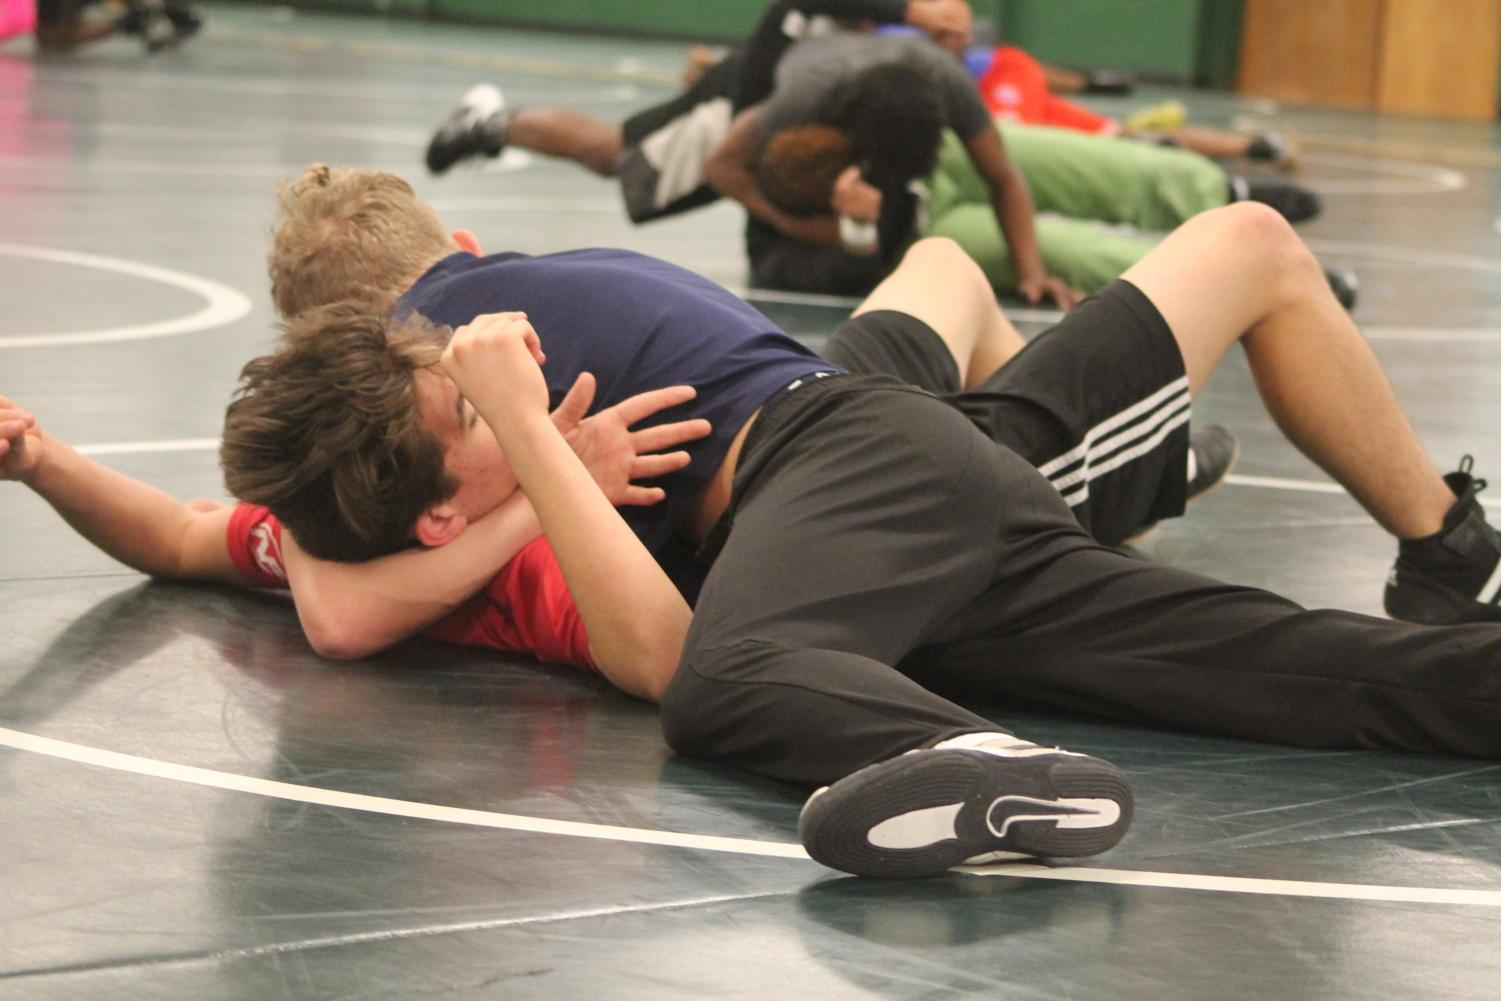 Drills and practicing moves help players develop skills for their matches.